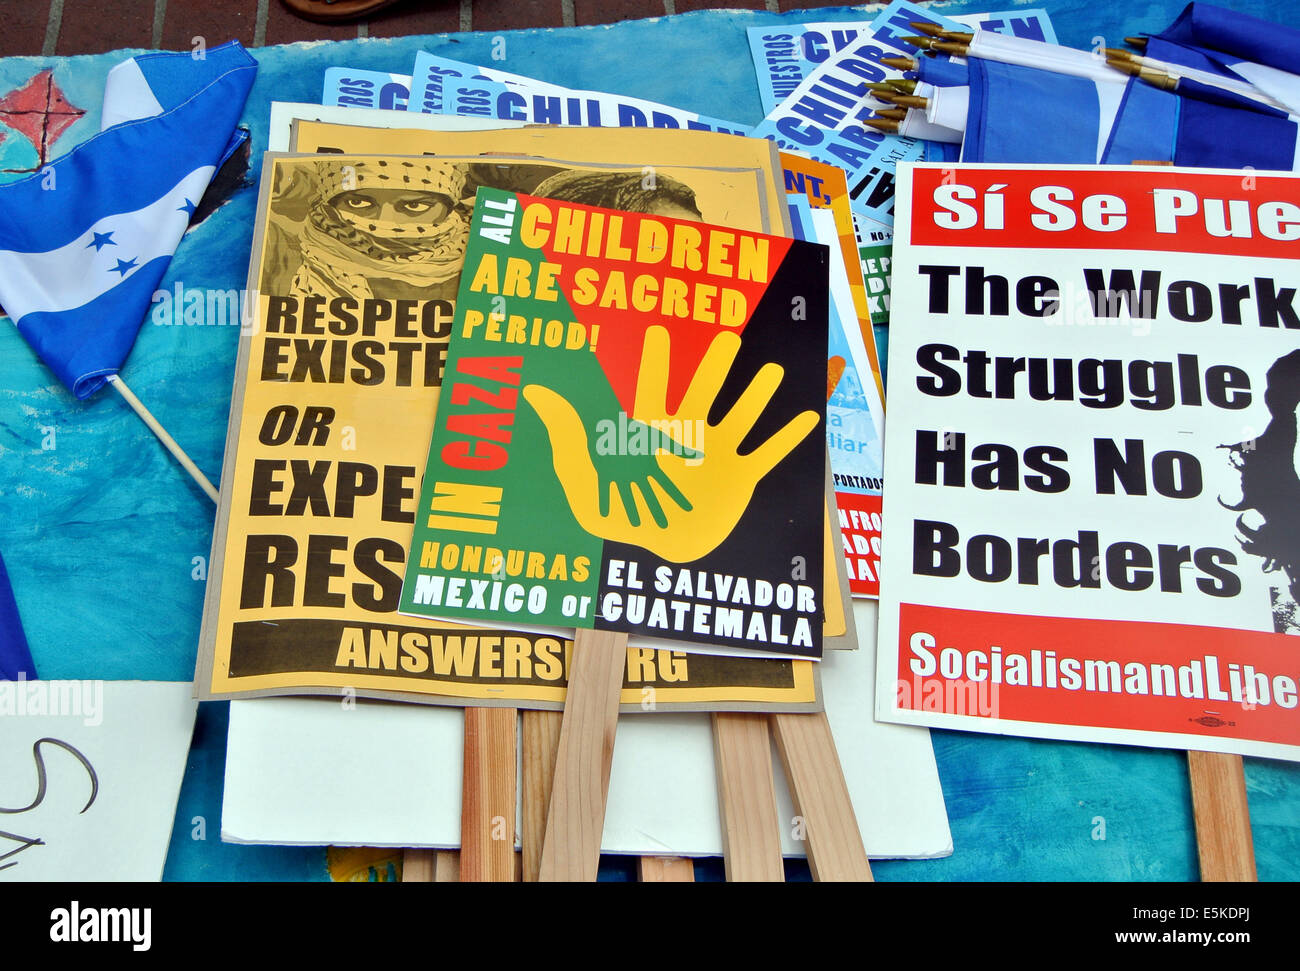 San Francisco, CA, USA, 2nd Aug, 2014. August 2nd, San Francisco, California USA.  Signs condeming Israel bombing - Stock Image